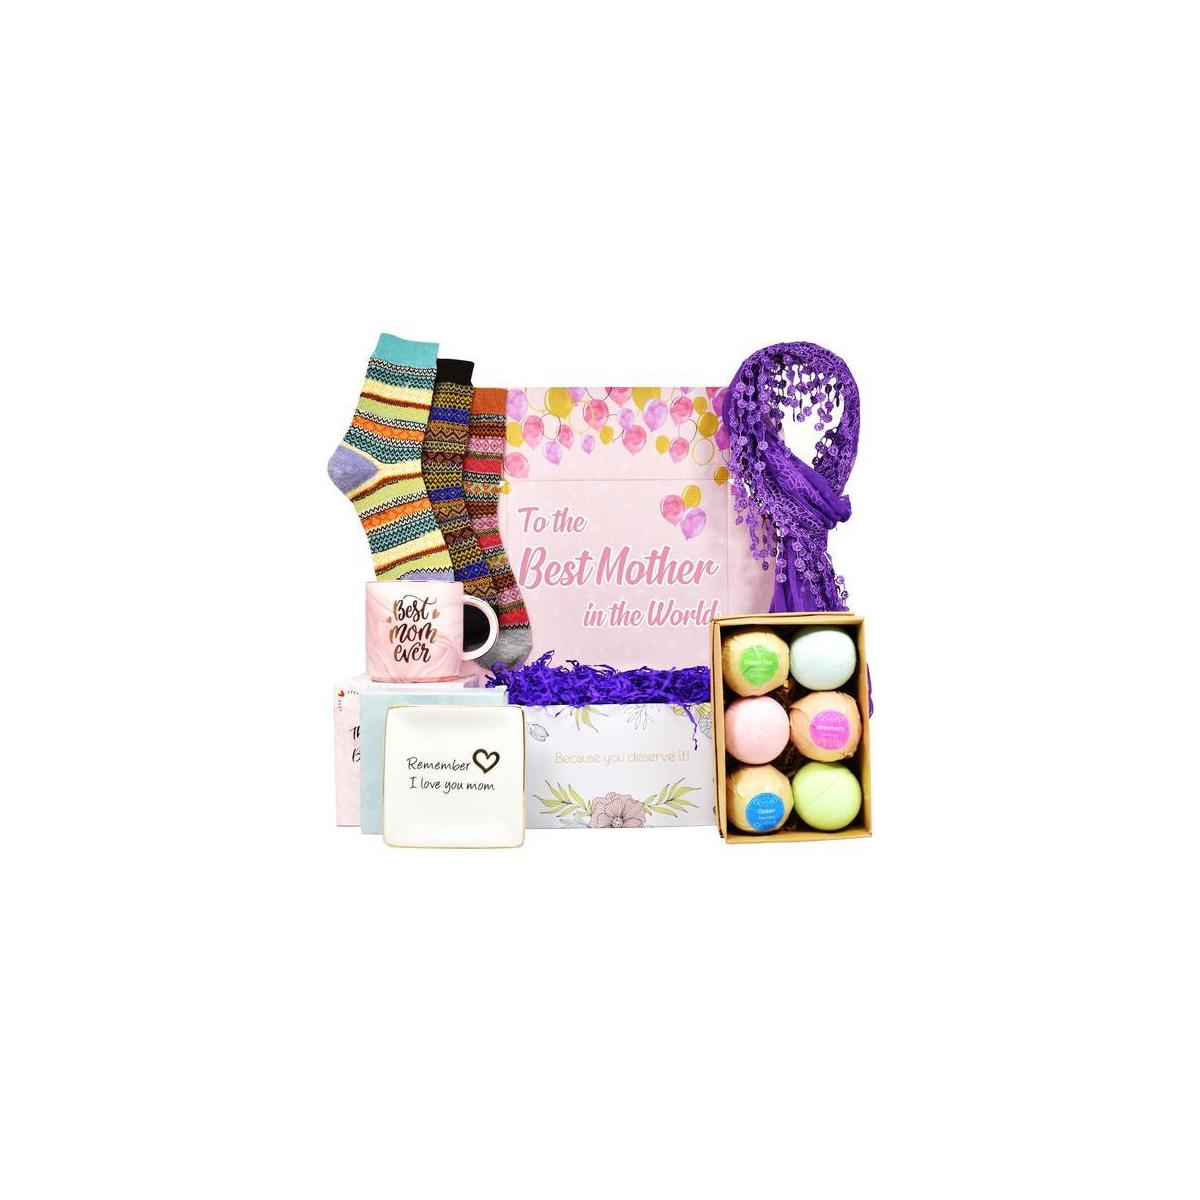 GIFT BASKET - Best Gifts for mom INCLUDES: Coffee Mug, Ring Holders for Jewelry, Bubble Bath for Women, Warm Socks, and Womens Scarves. Best Mom Gifts for Birthda